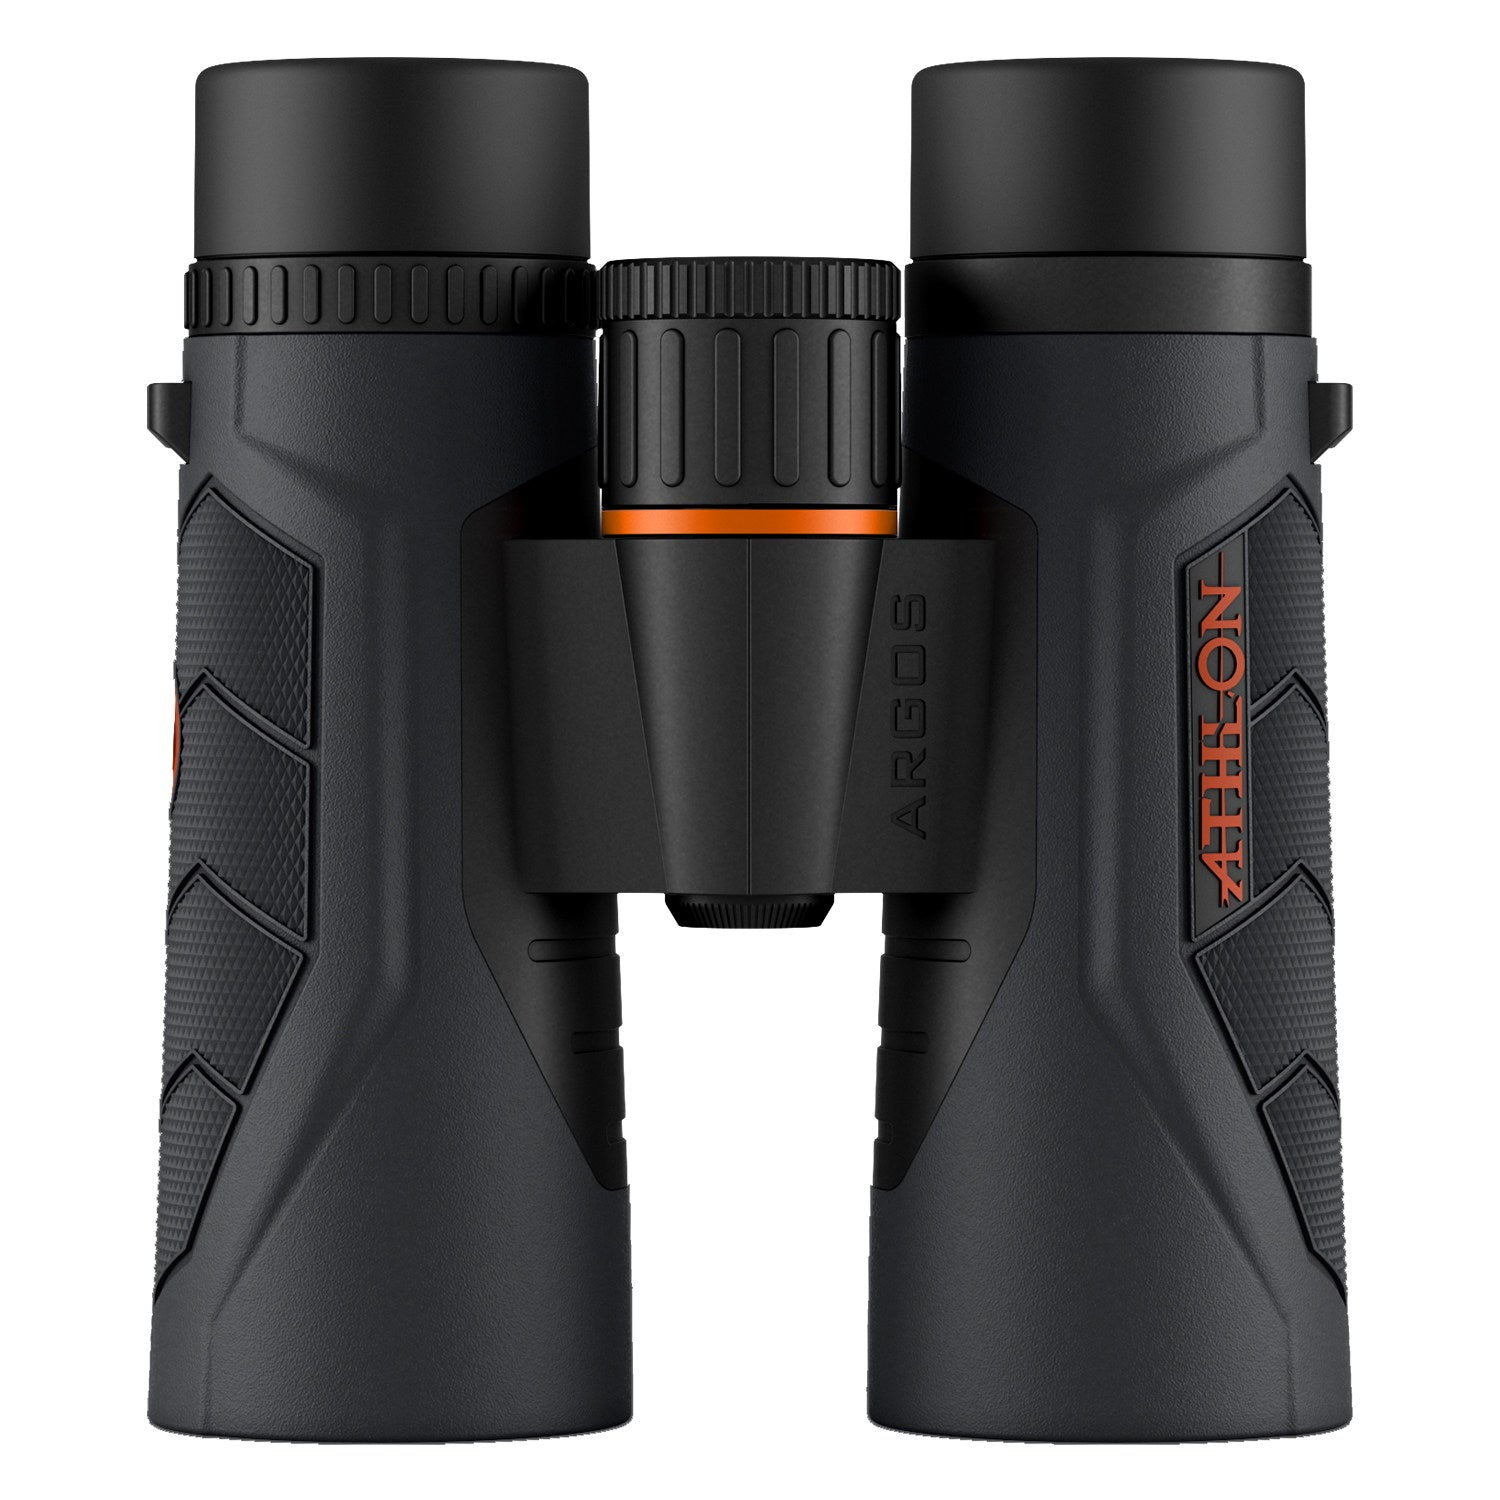 Athlon Optics Argos G2 10x42mm UHD Binoculars